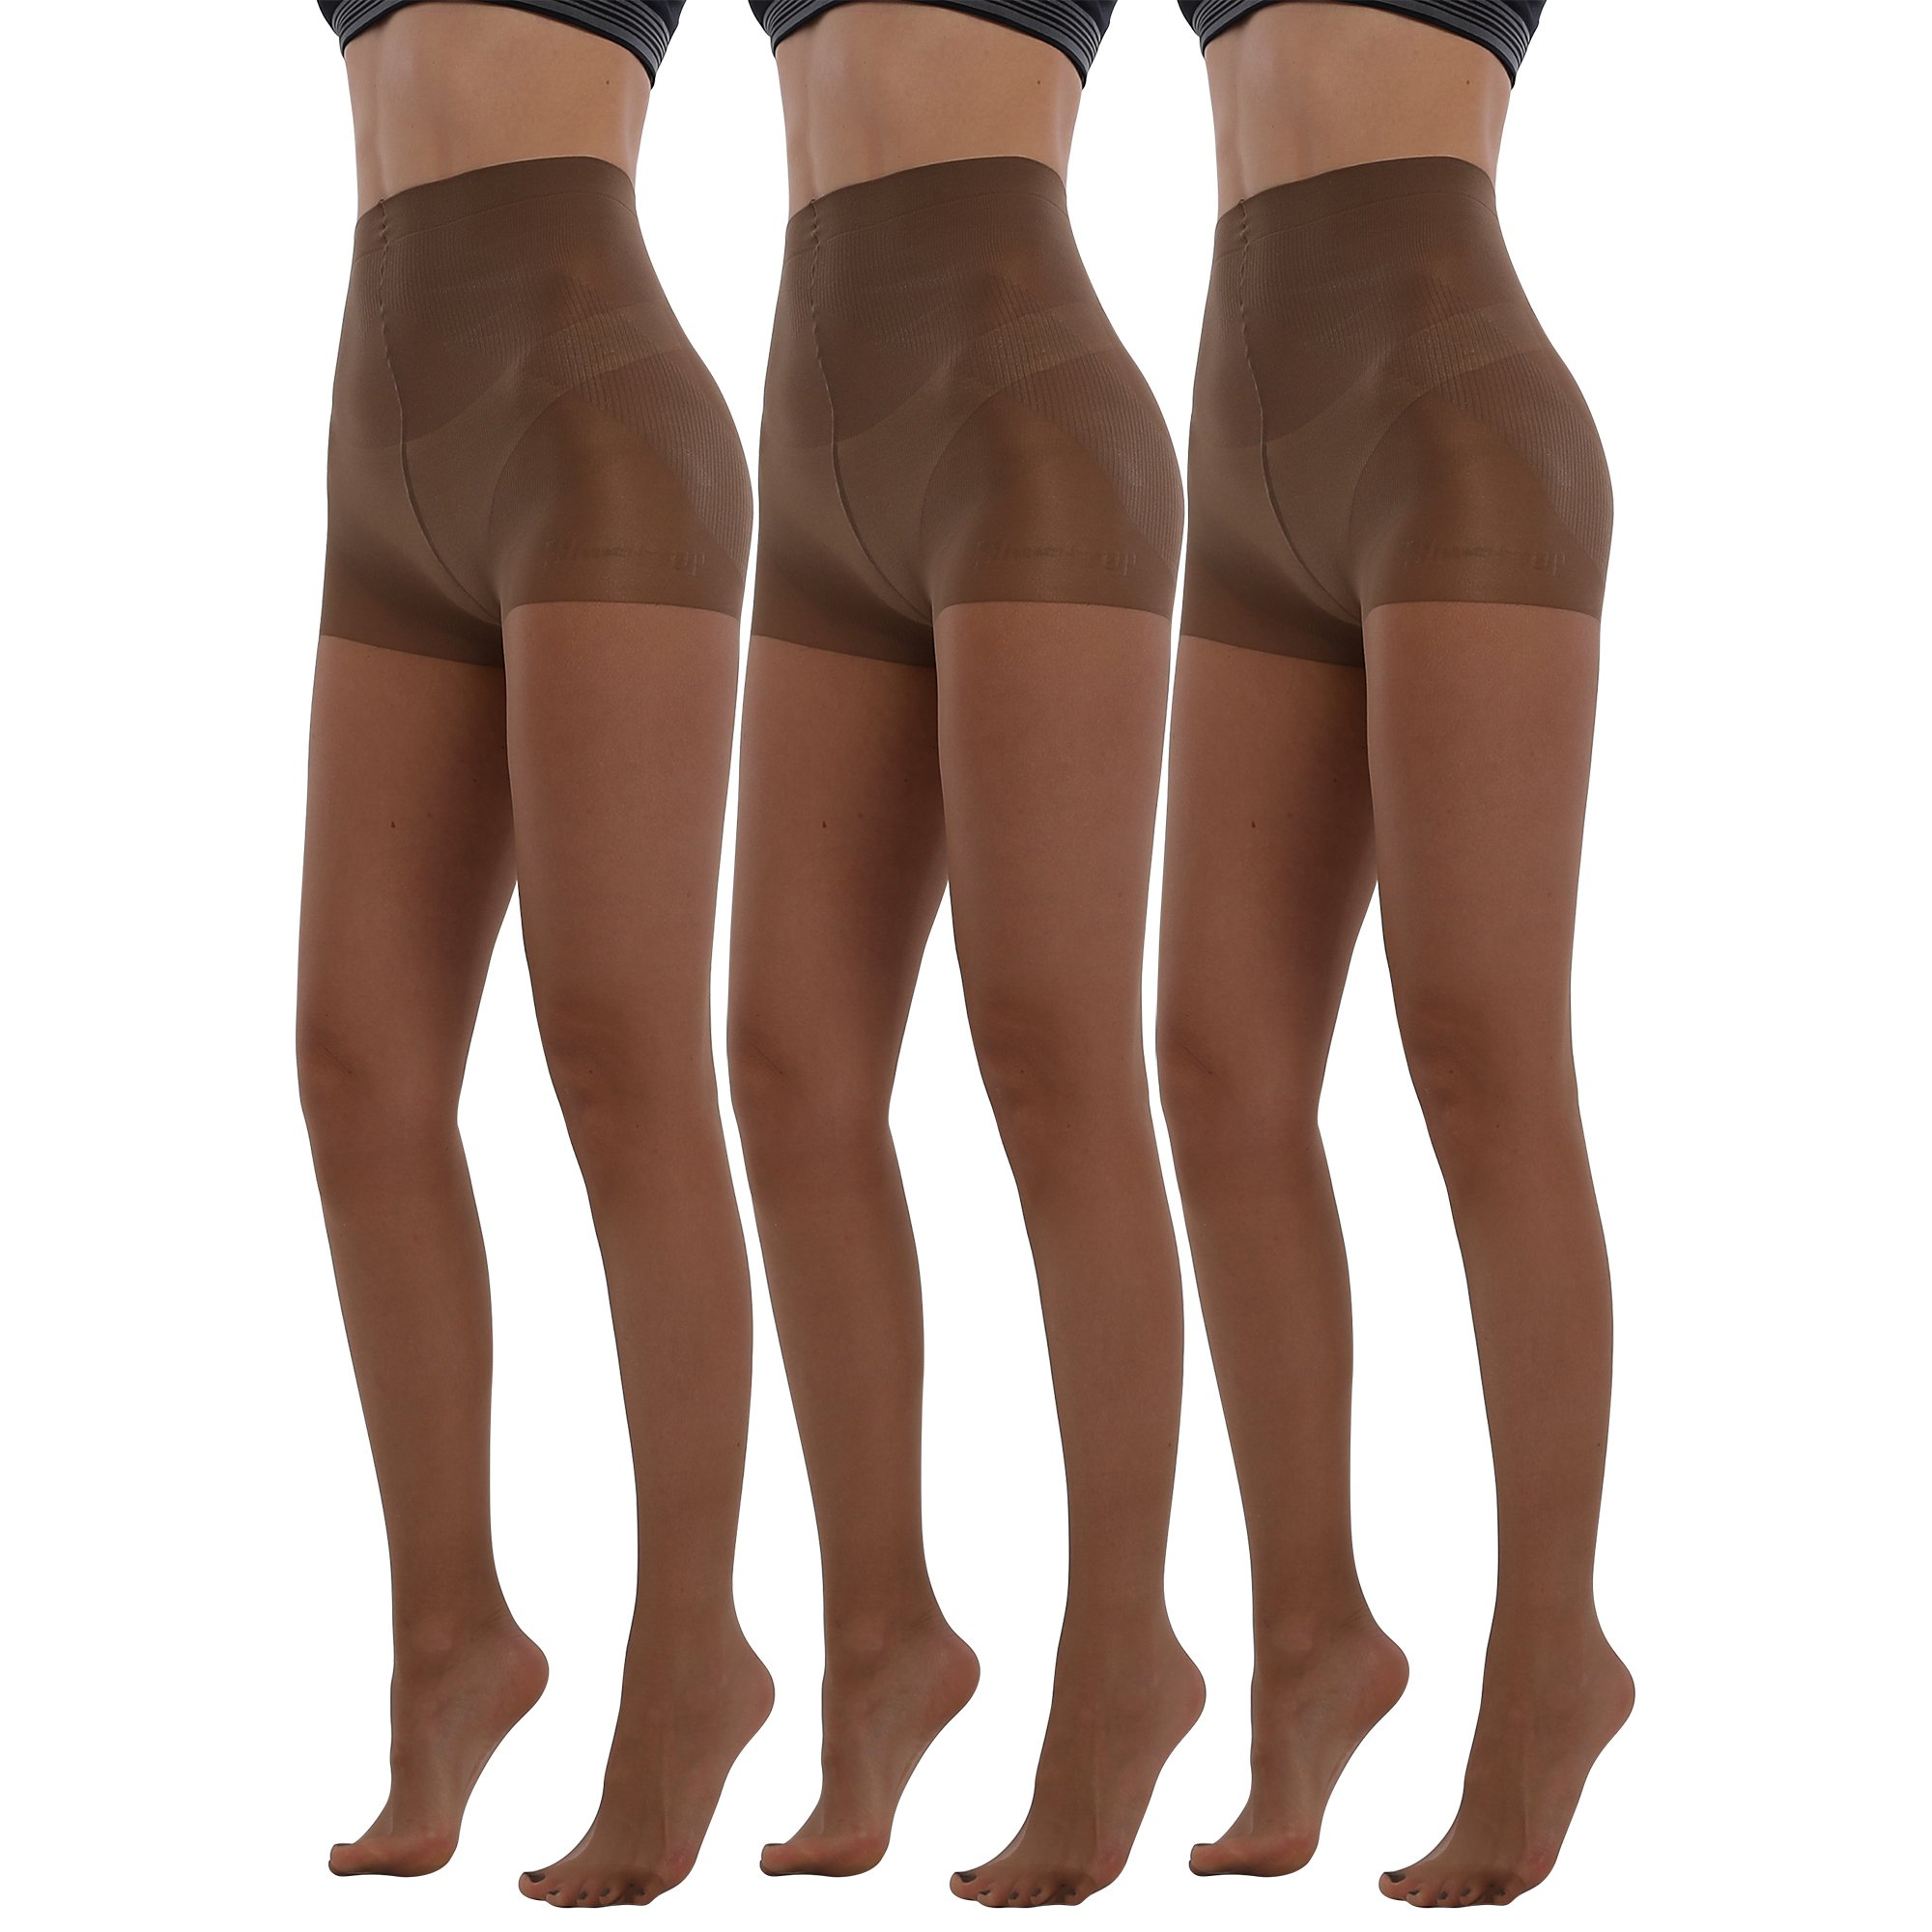 BONAS 3Pack Shock Up Pantyhose 20 Denier Control Top Stockings Push Up Tights Shaped